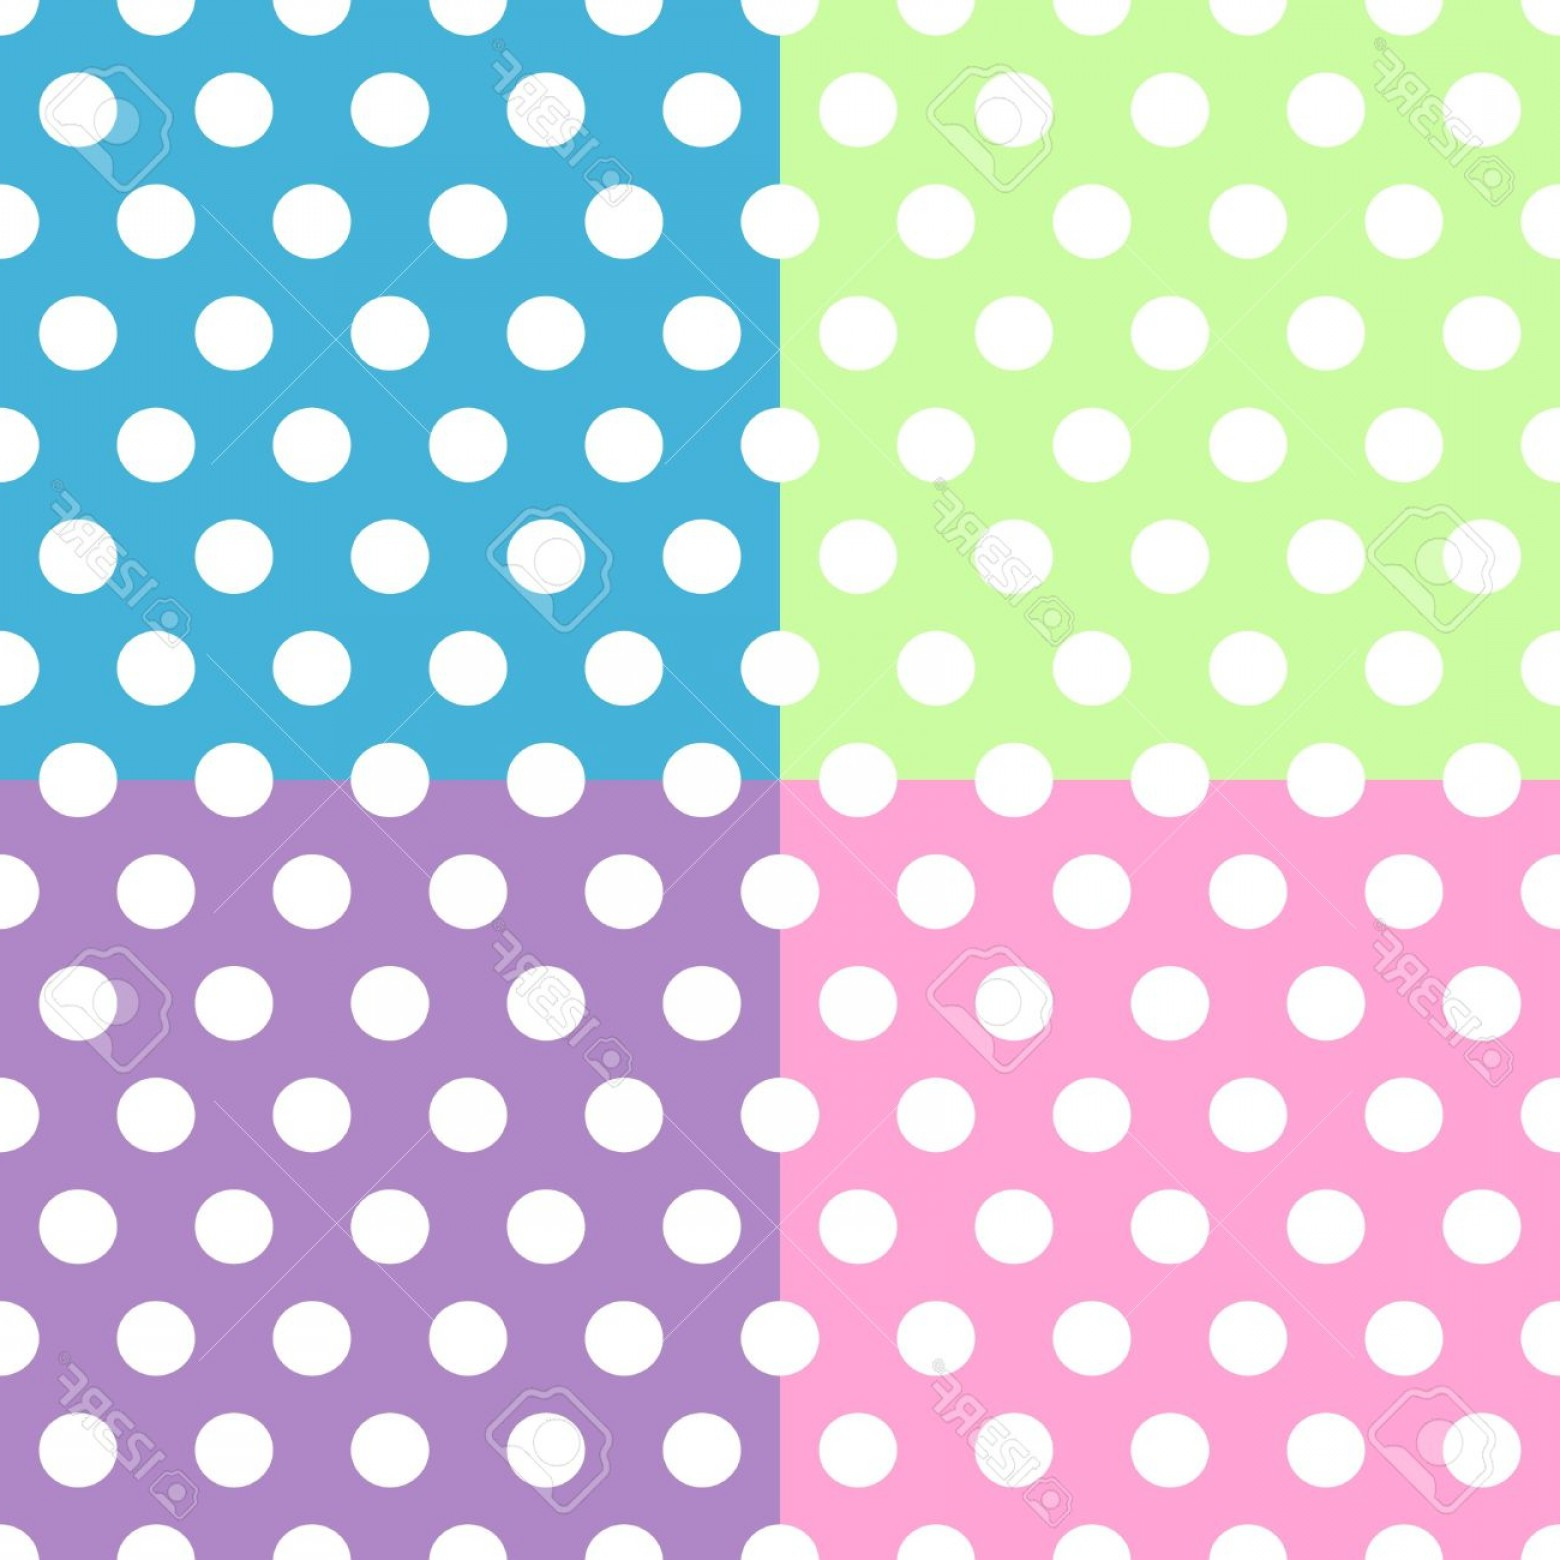 Purple Green And White Vector: Photoseamless Pattern Of Cute Fun And Bold White Polka Dots Patterns Over Pink Purple Green And Blue Squa